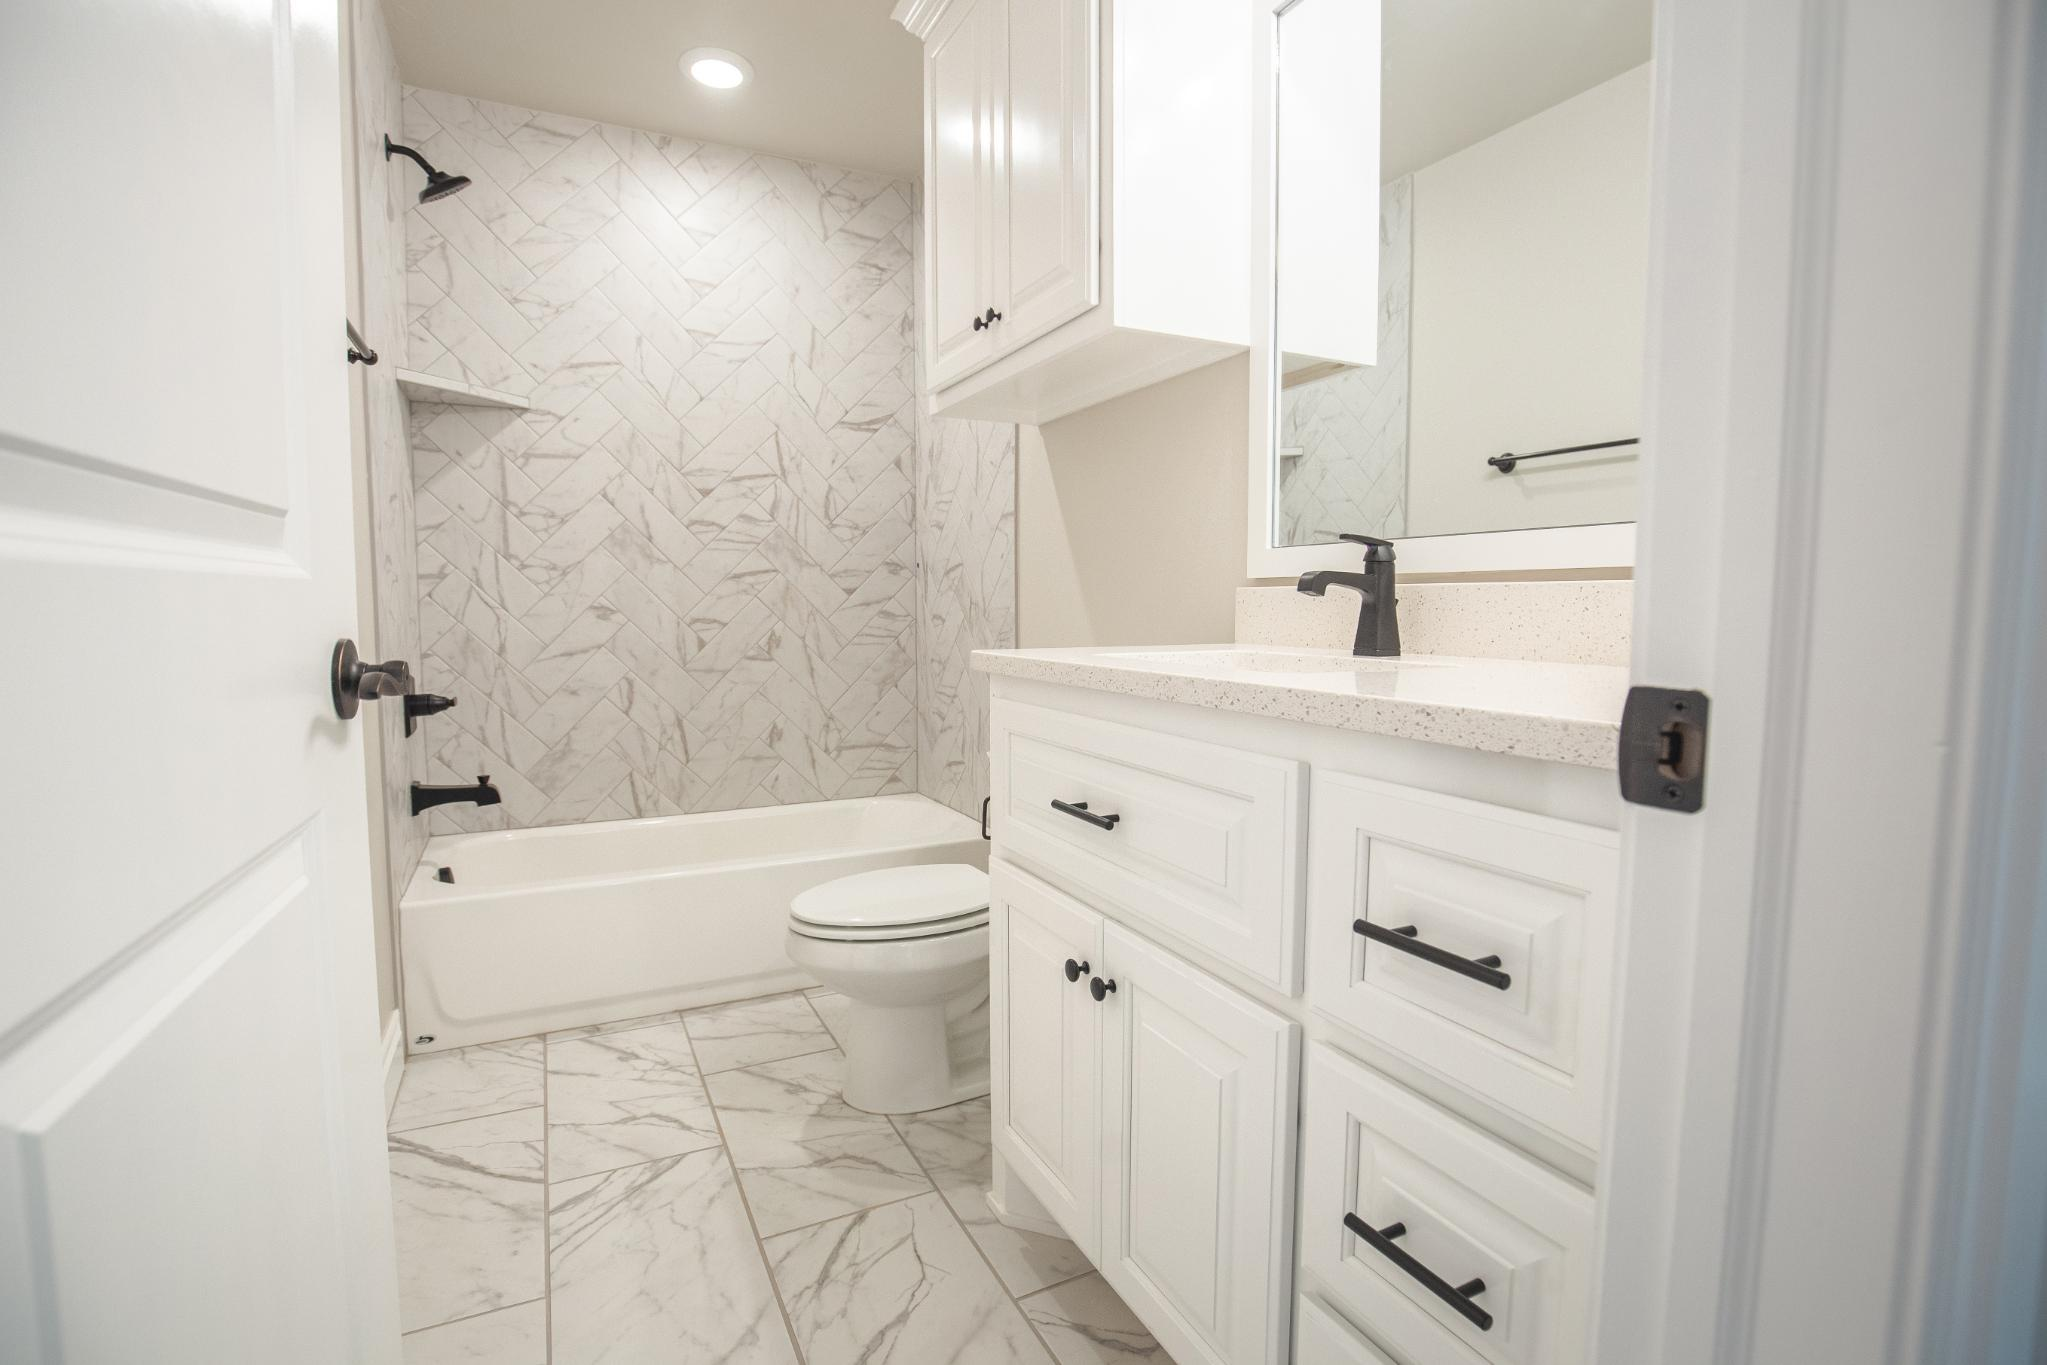 Bathroom featured in the Zade By Homes By Taber in Oklahoma City, OK